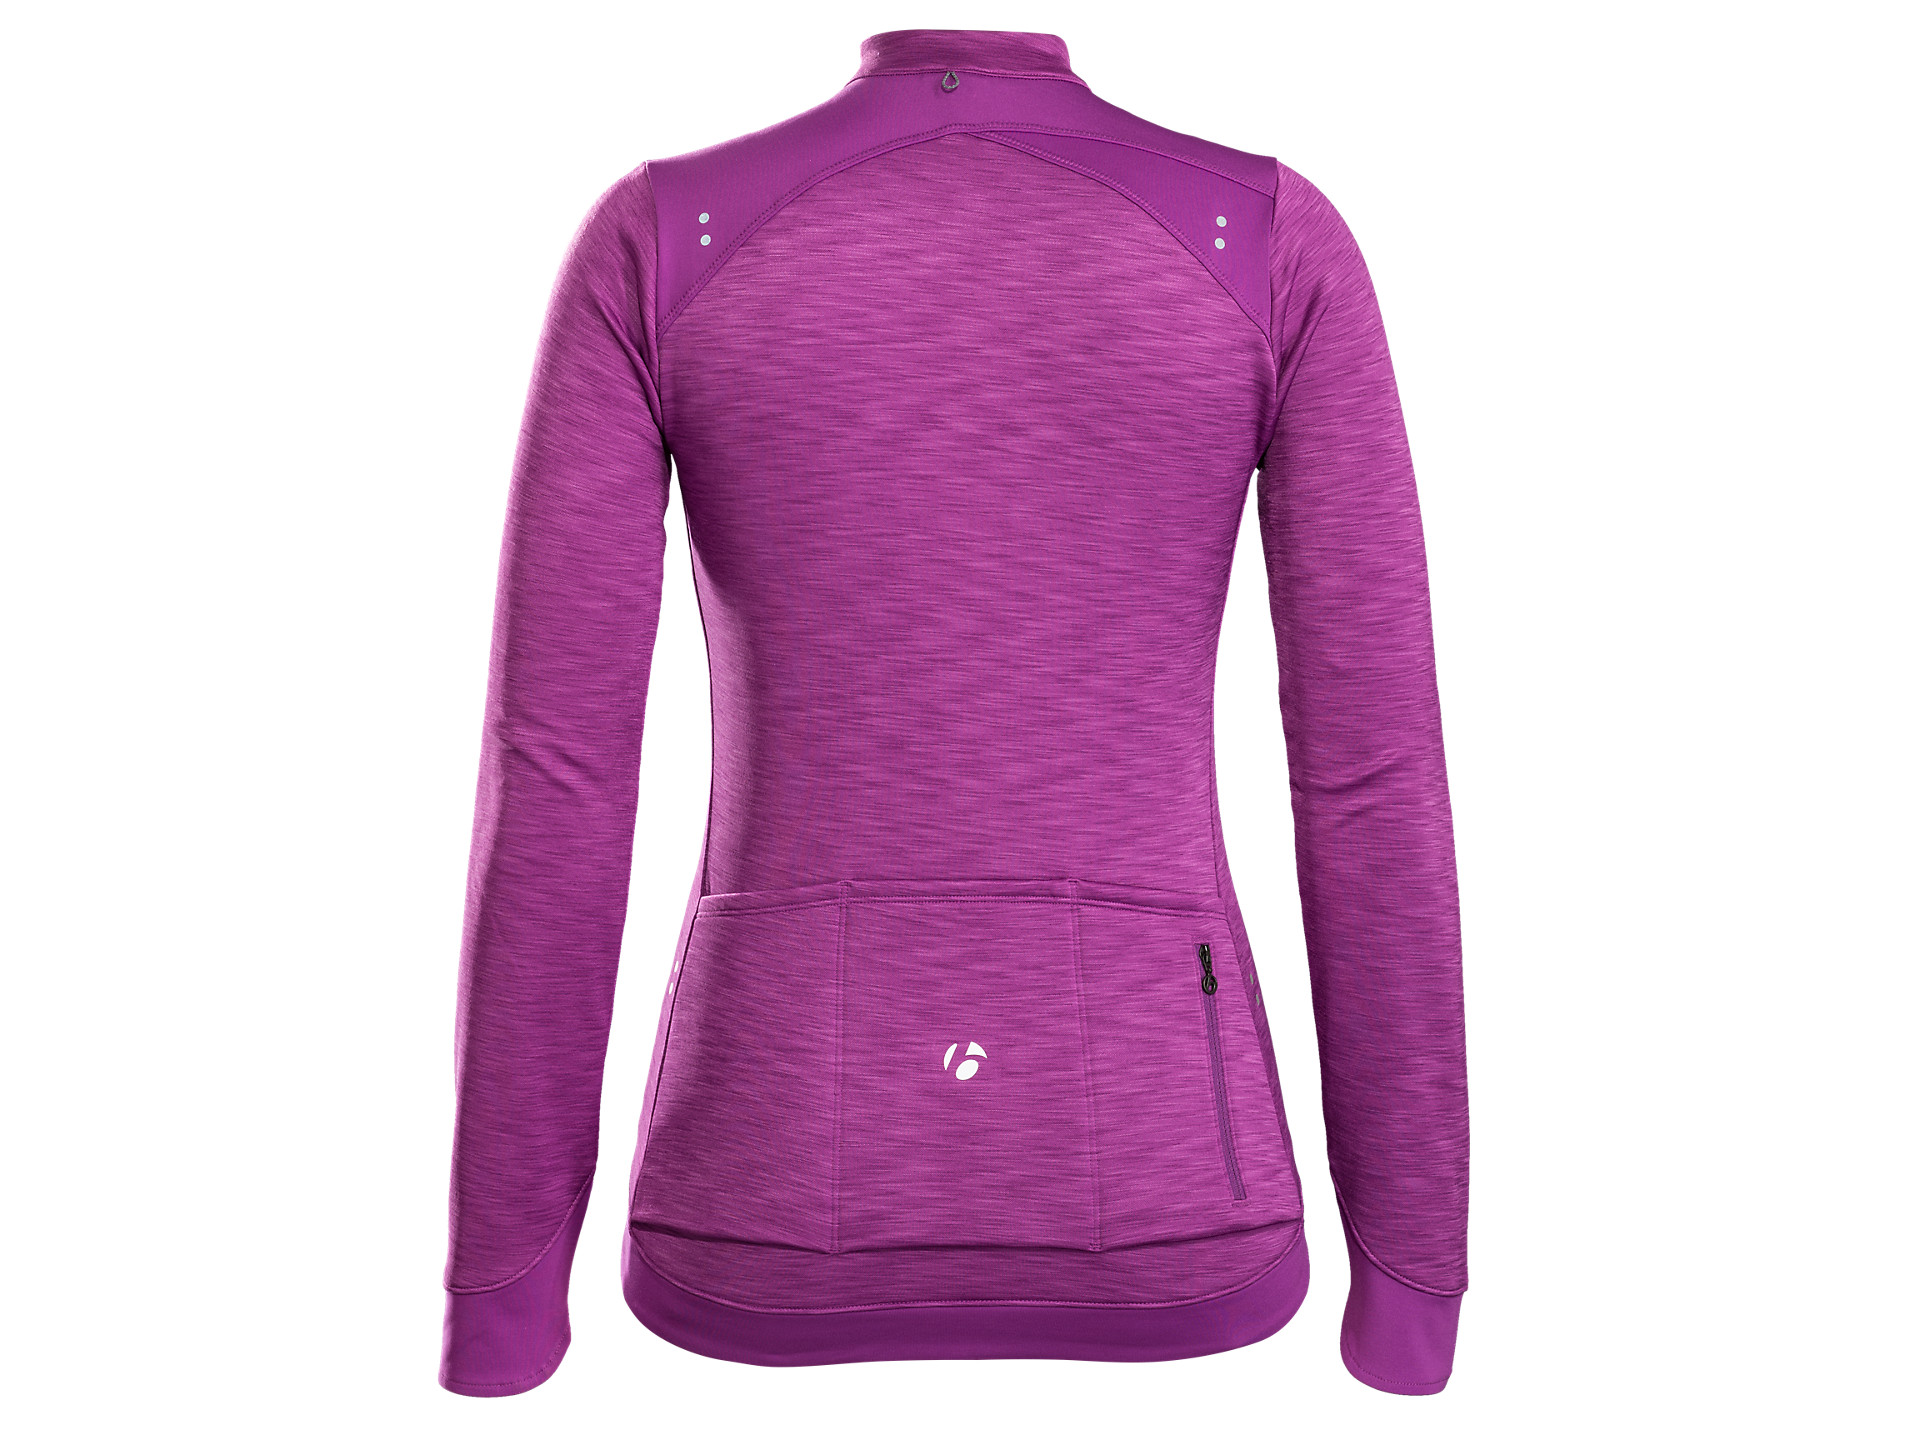 319eacd05 Bontrager Vella Thermal Long Sleeve Women s Cycling Jersey